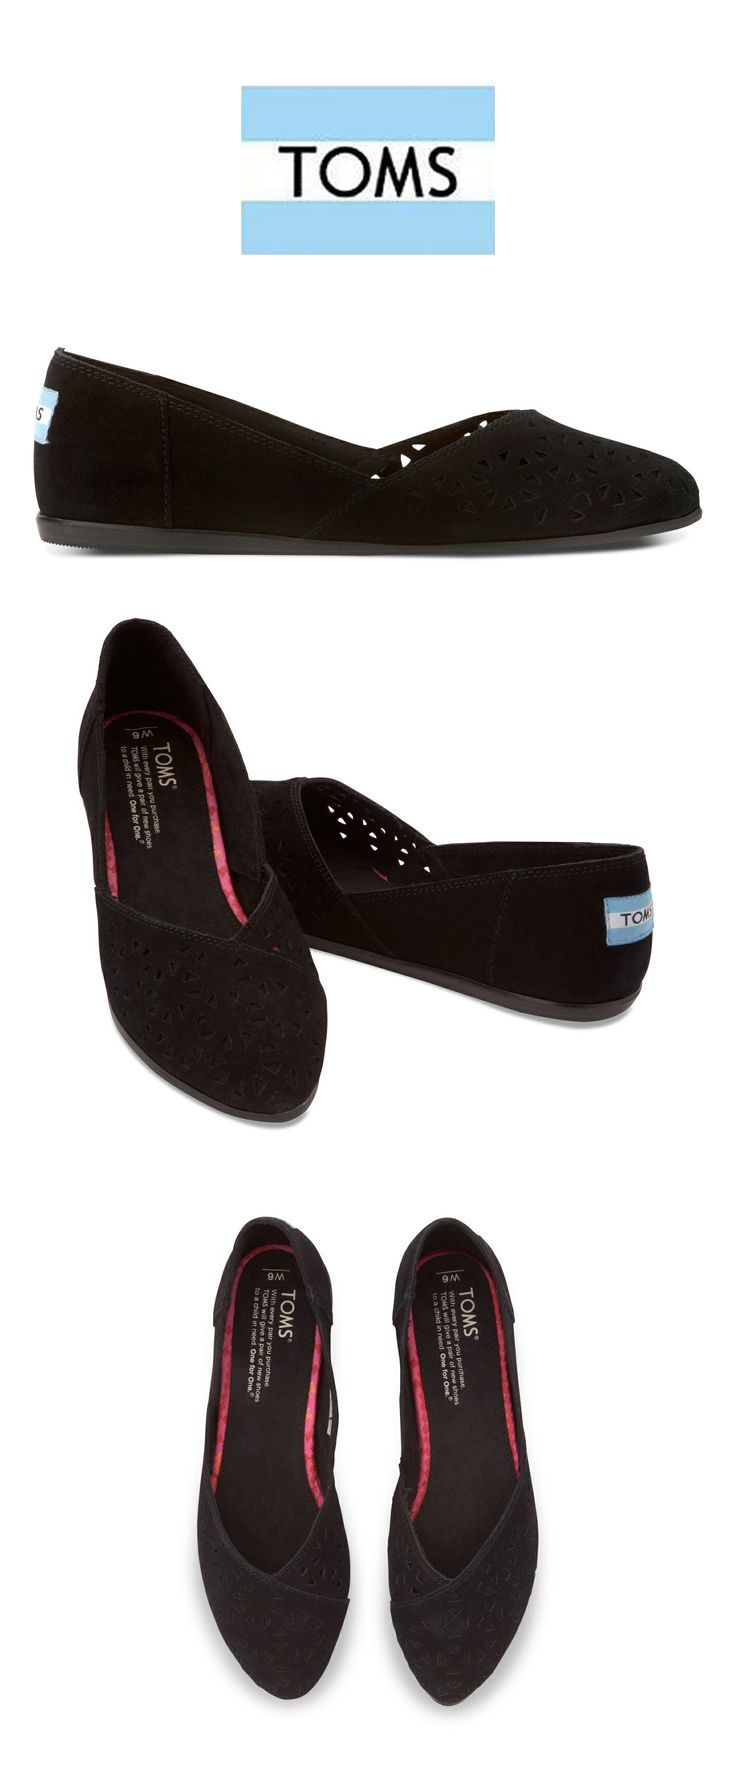 toms shoes outlet #toms #shoes #outlet